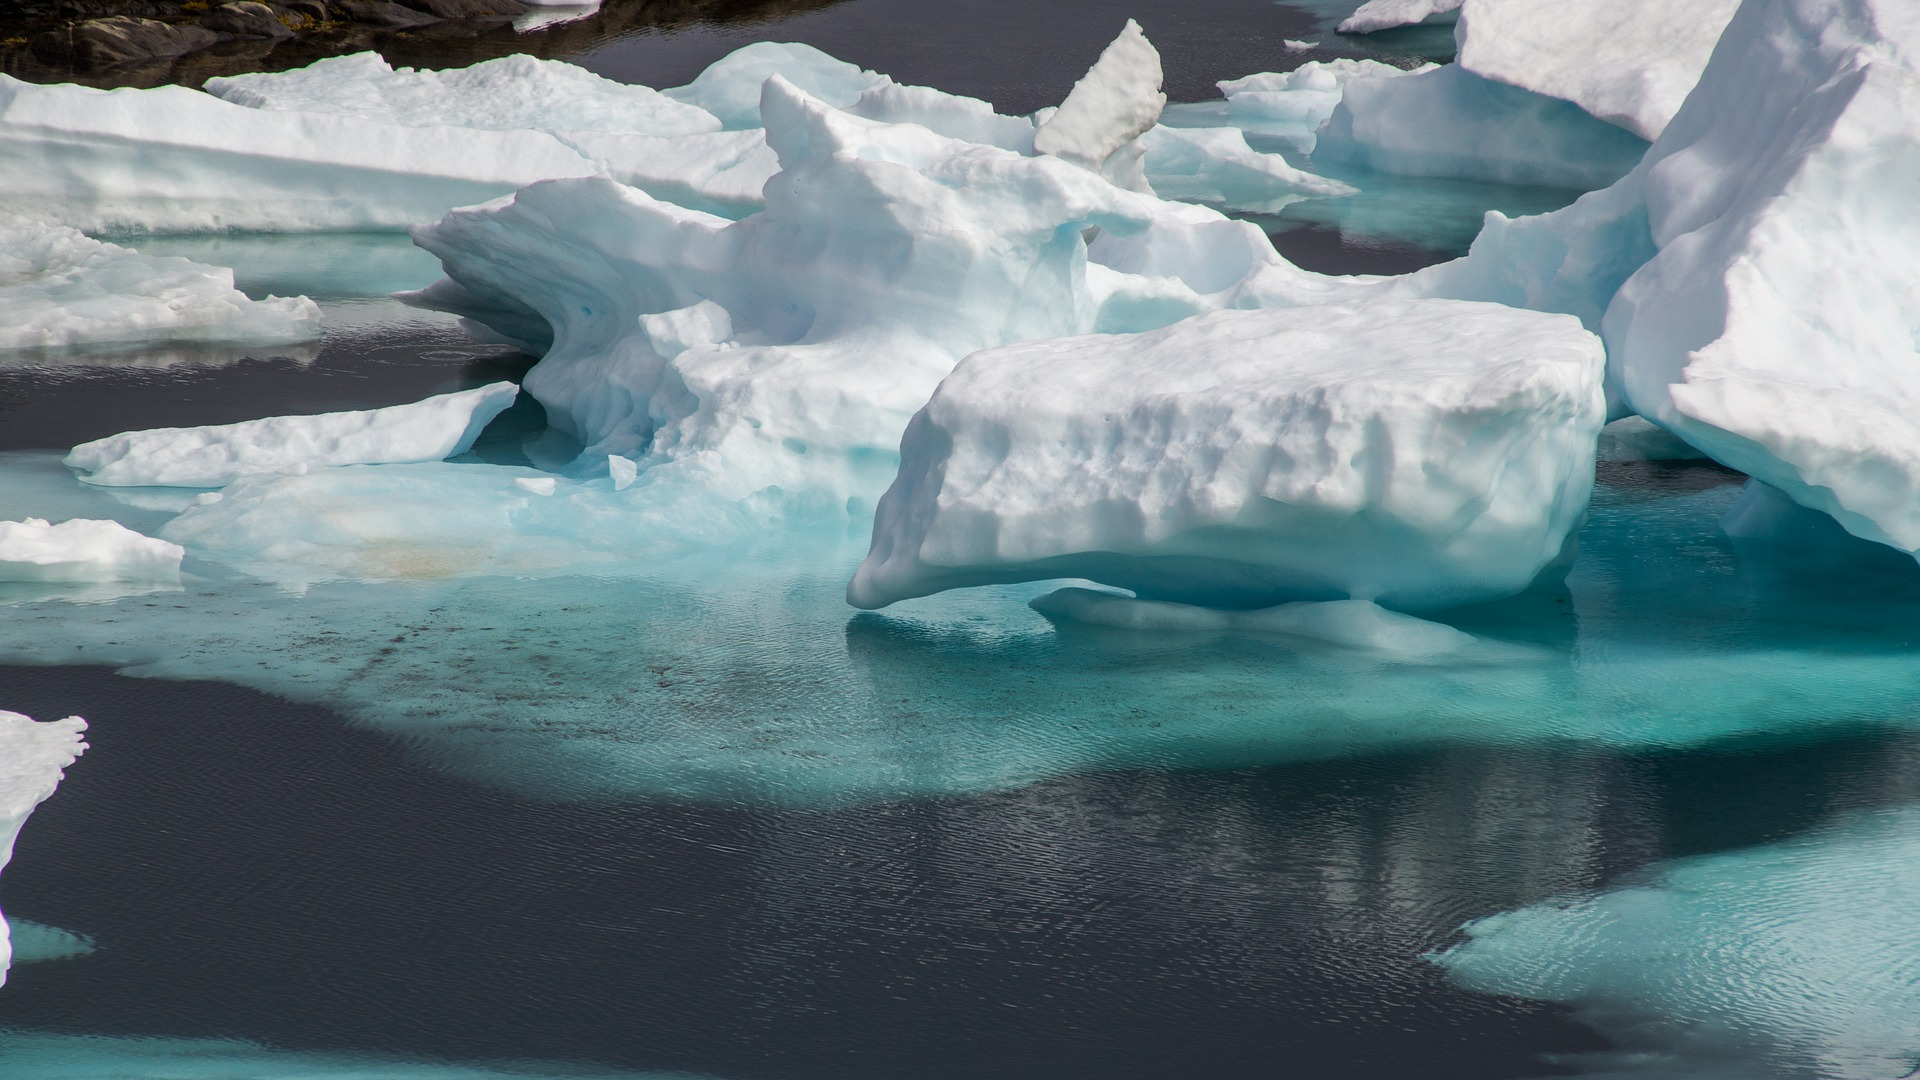 drift-ice-3048157_1920.jpg